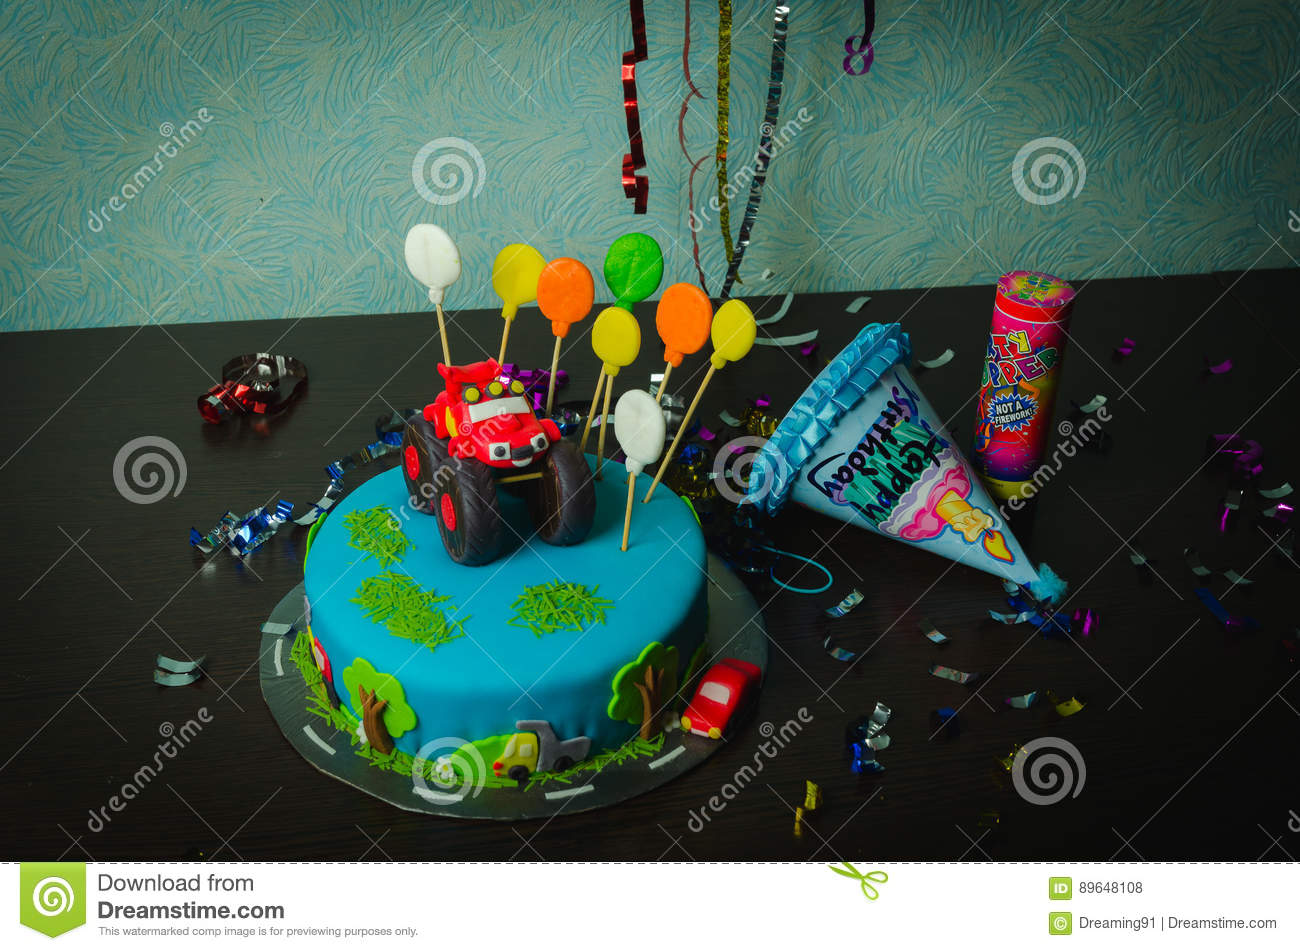 Childrens Happy Birthday Cake Decorated Car Stock Photo Image Of